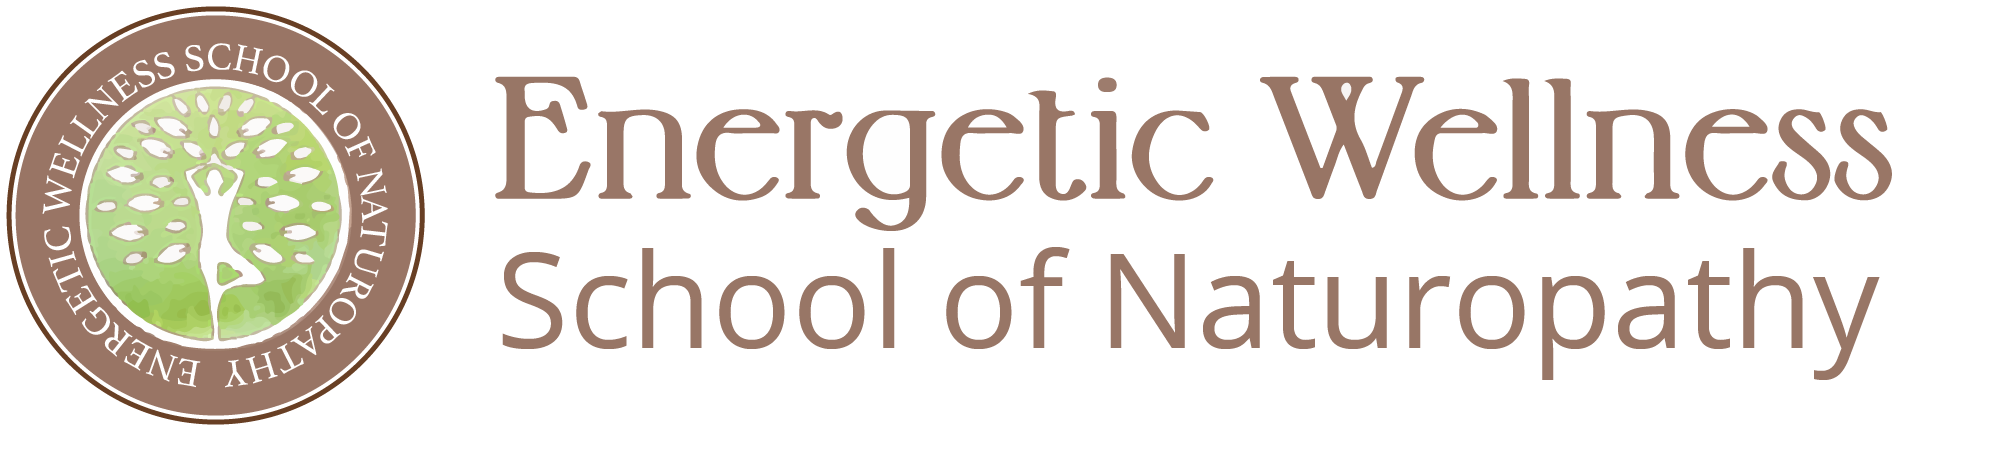 The School of Naturopathy